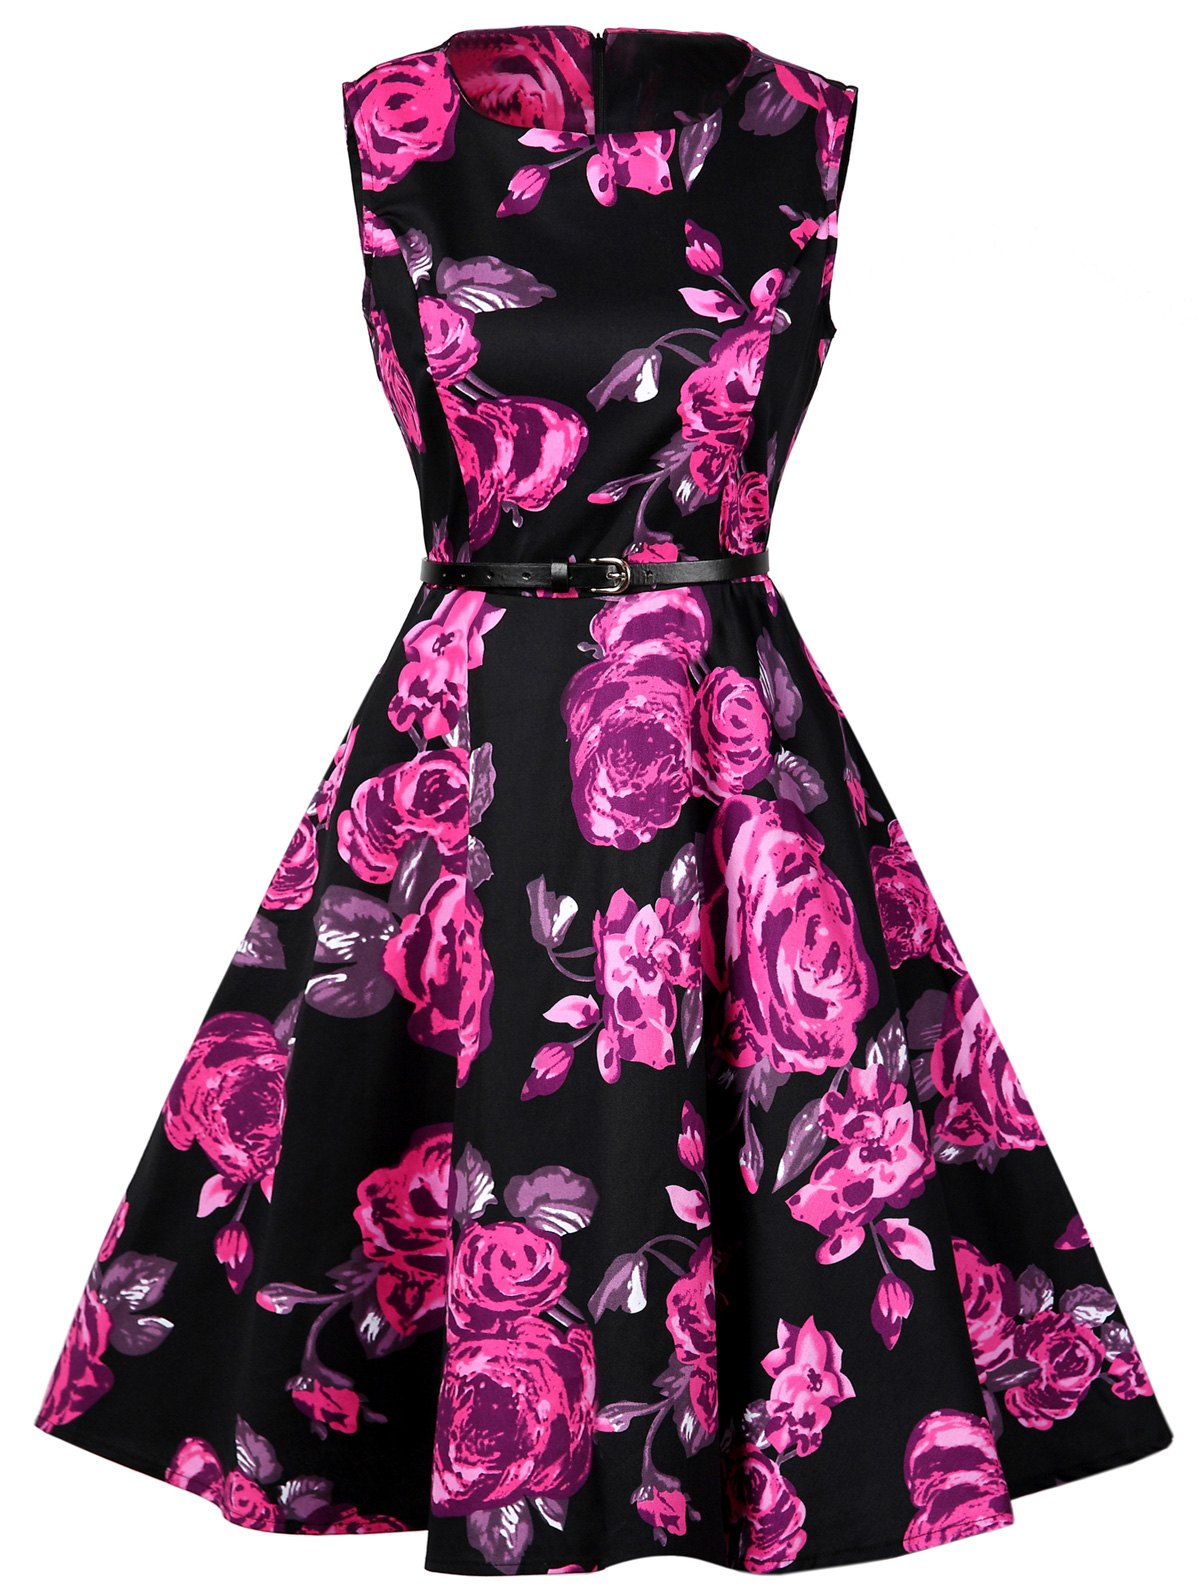 Floral Print Cotton Vintage Formal Dress - FLORAL 2XL